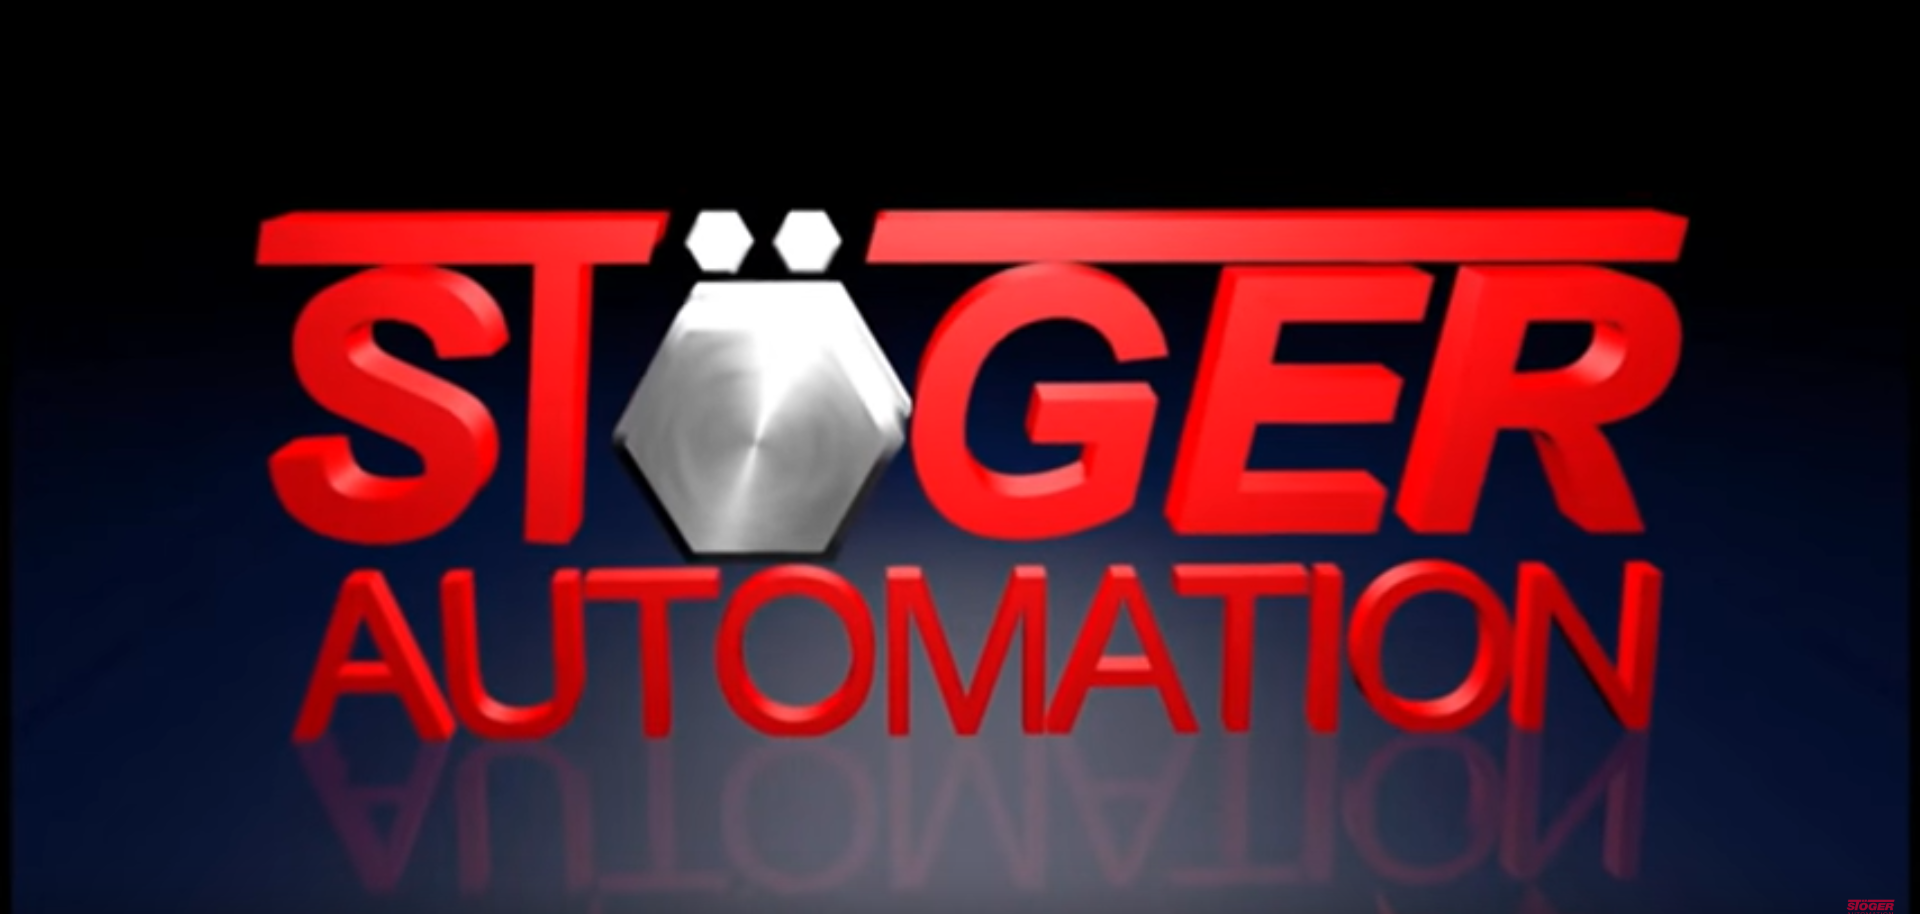 The STOGER AUTOMATION Logo